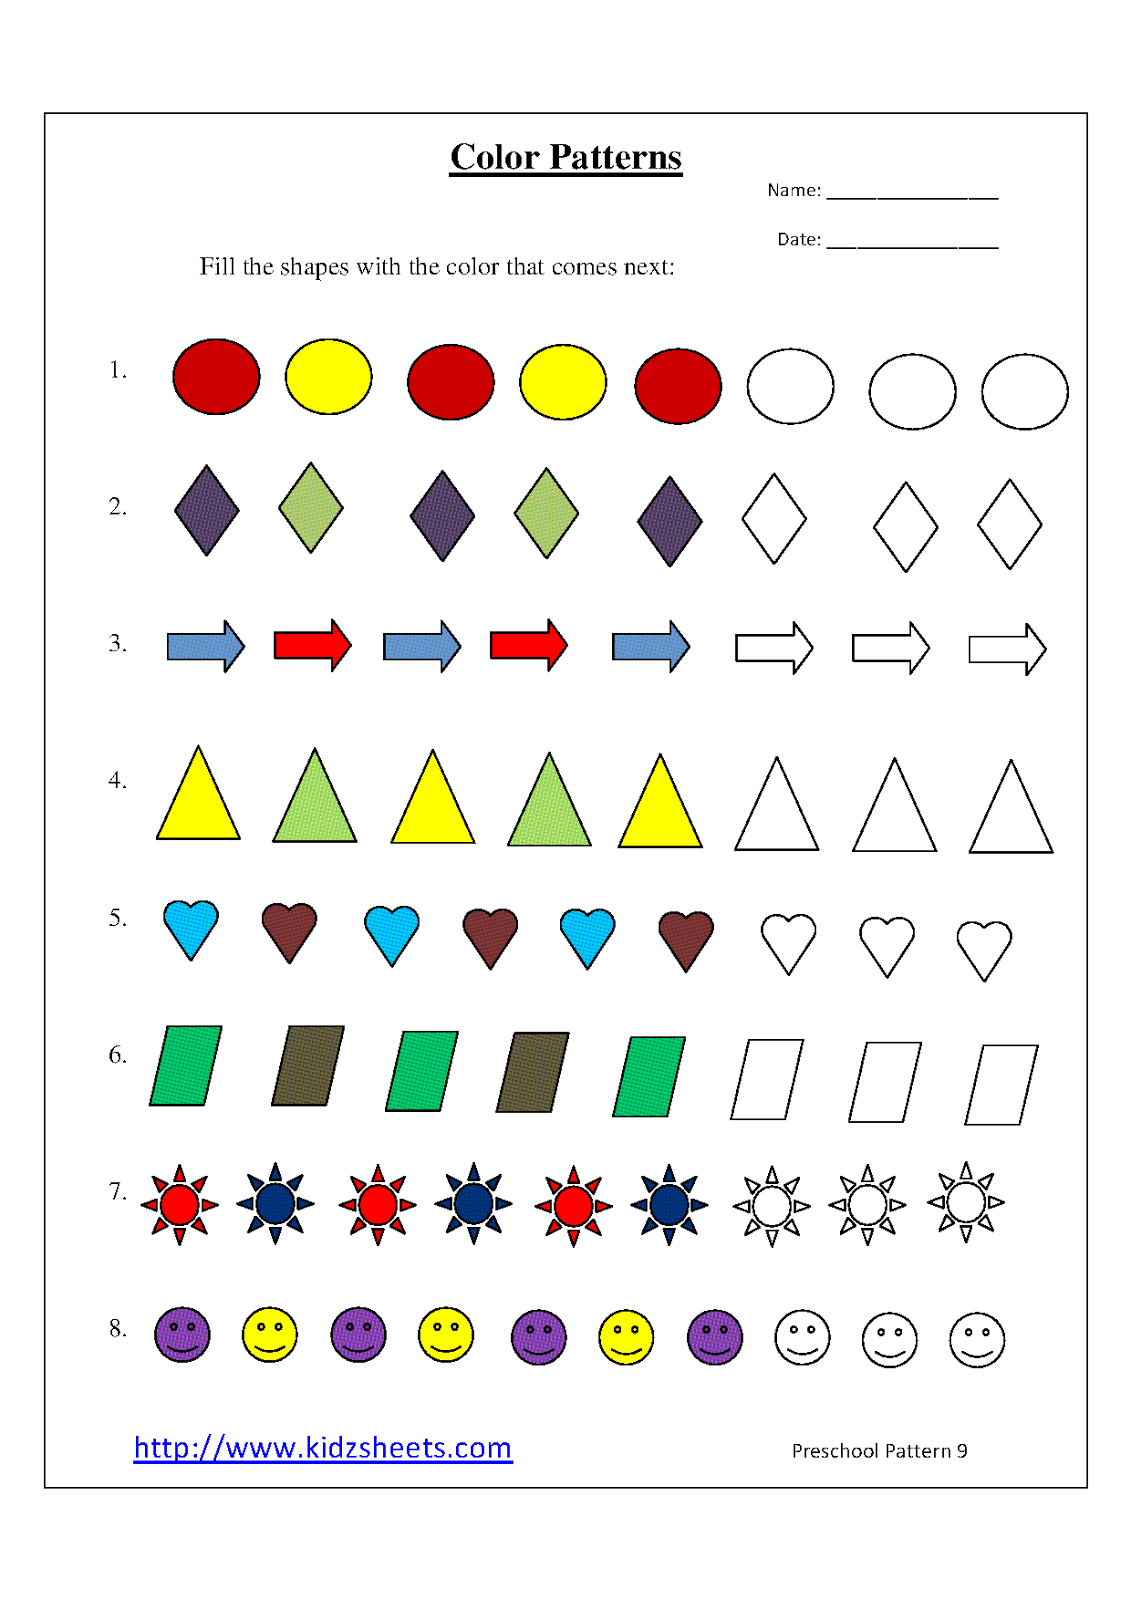 Kidz Worksheets Preschool Color Patterns Worksheet9 – Free Printable Maths Worksheets for Kindergarten